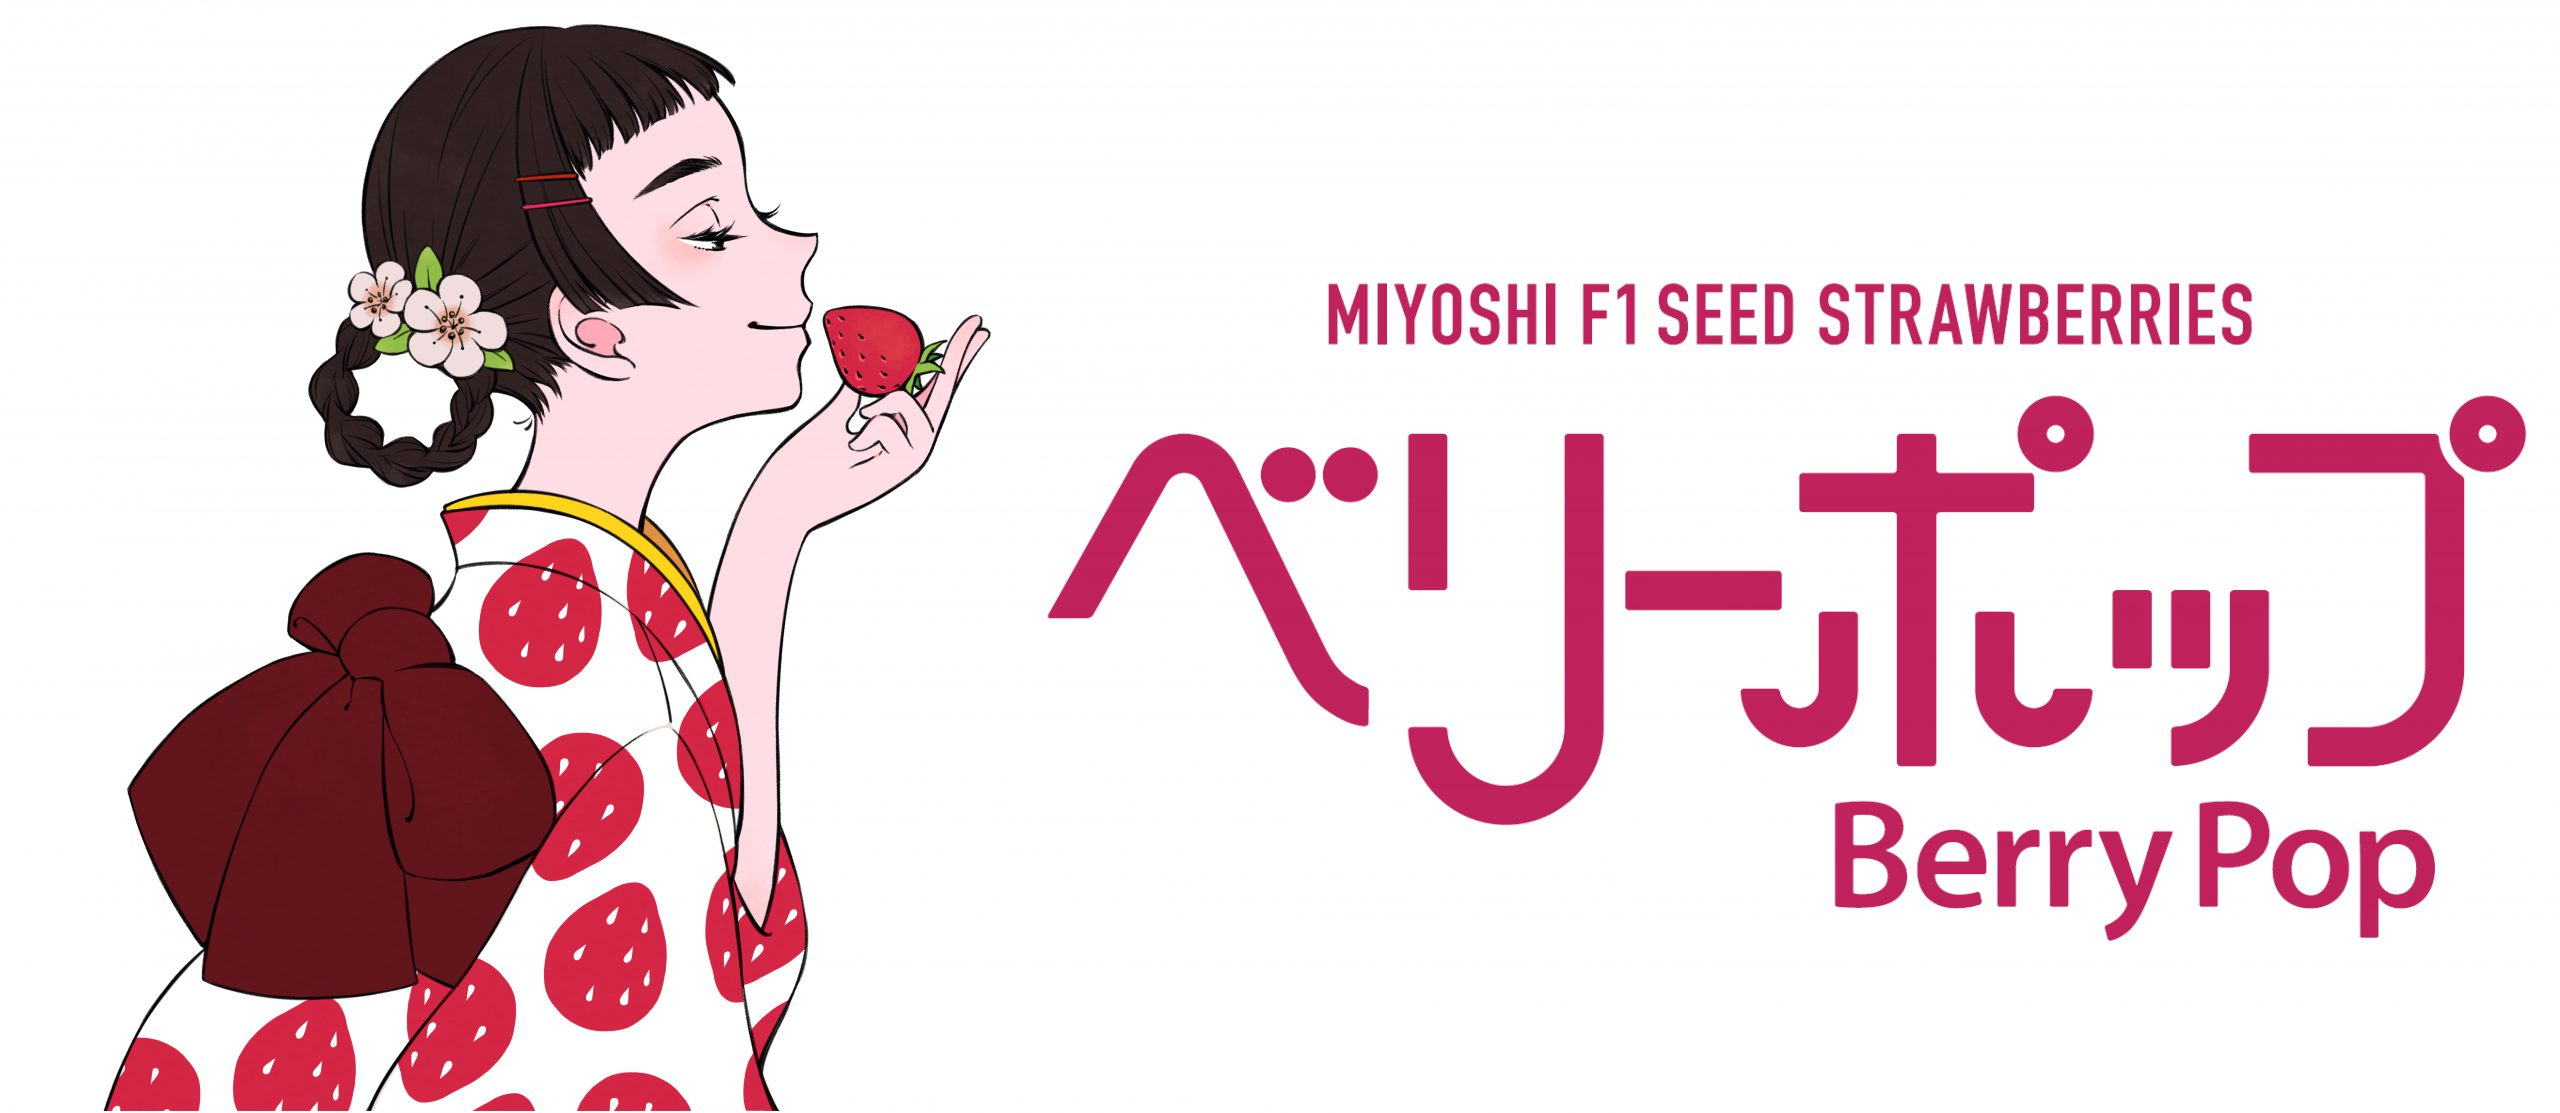 "MIYOSHI F1 SEED STRAWBERRIES are given the name ""Berry Pop"""